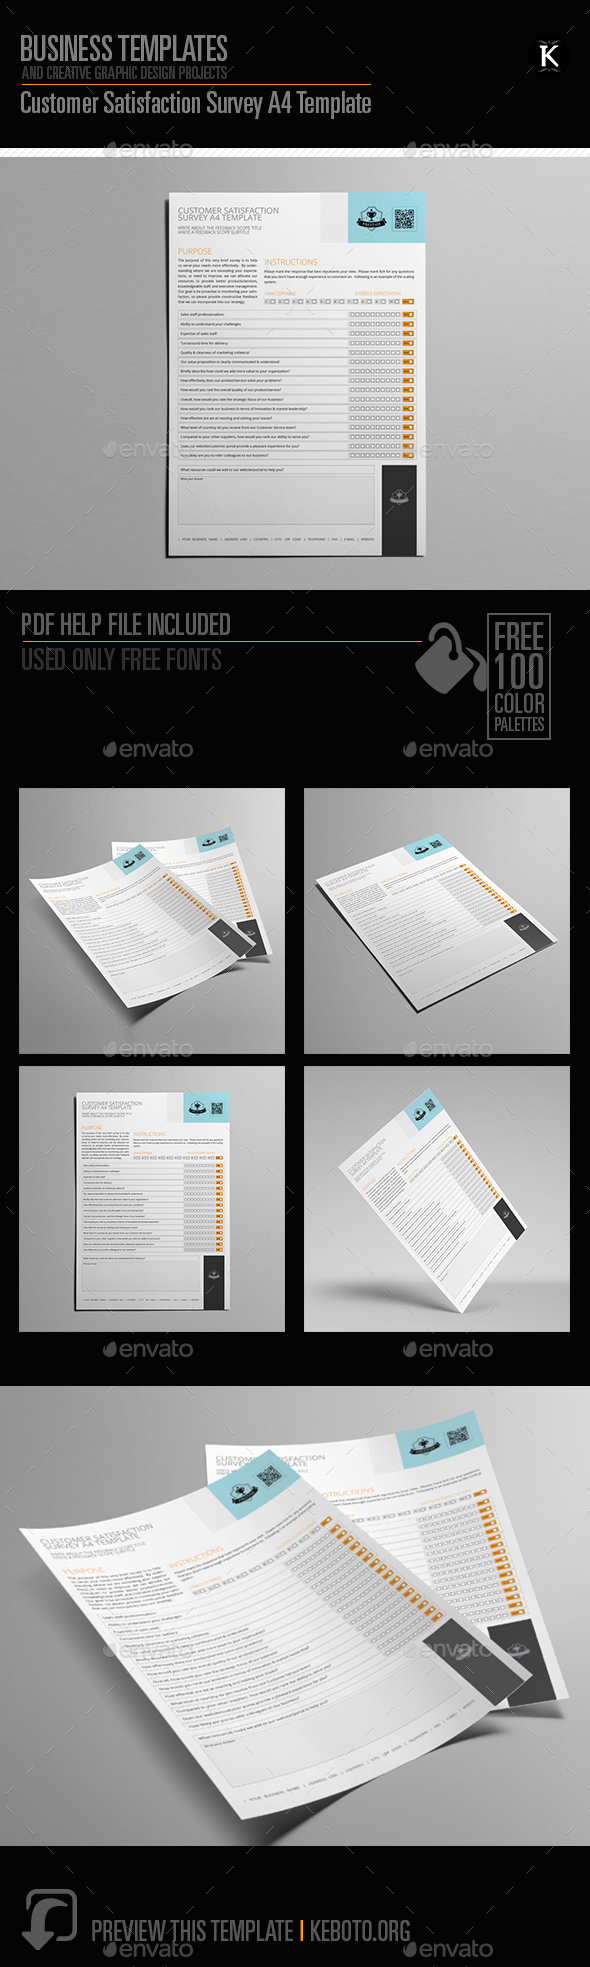 Customer Satisfaction Survey A4 Template - Miscellaneous Print Templates